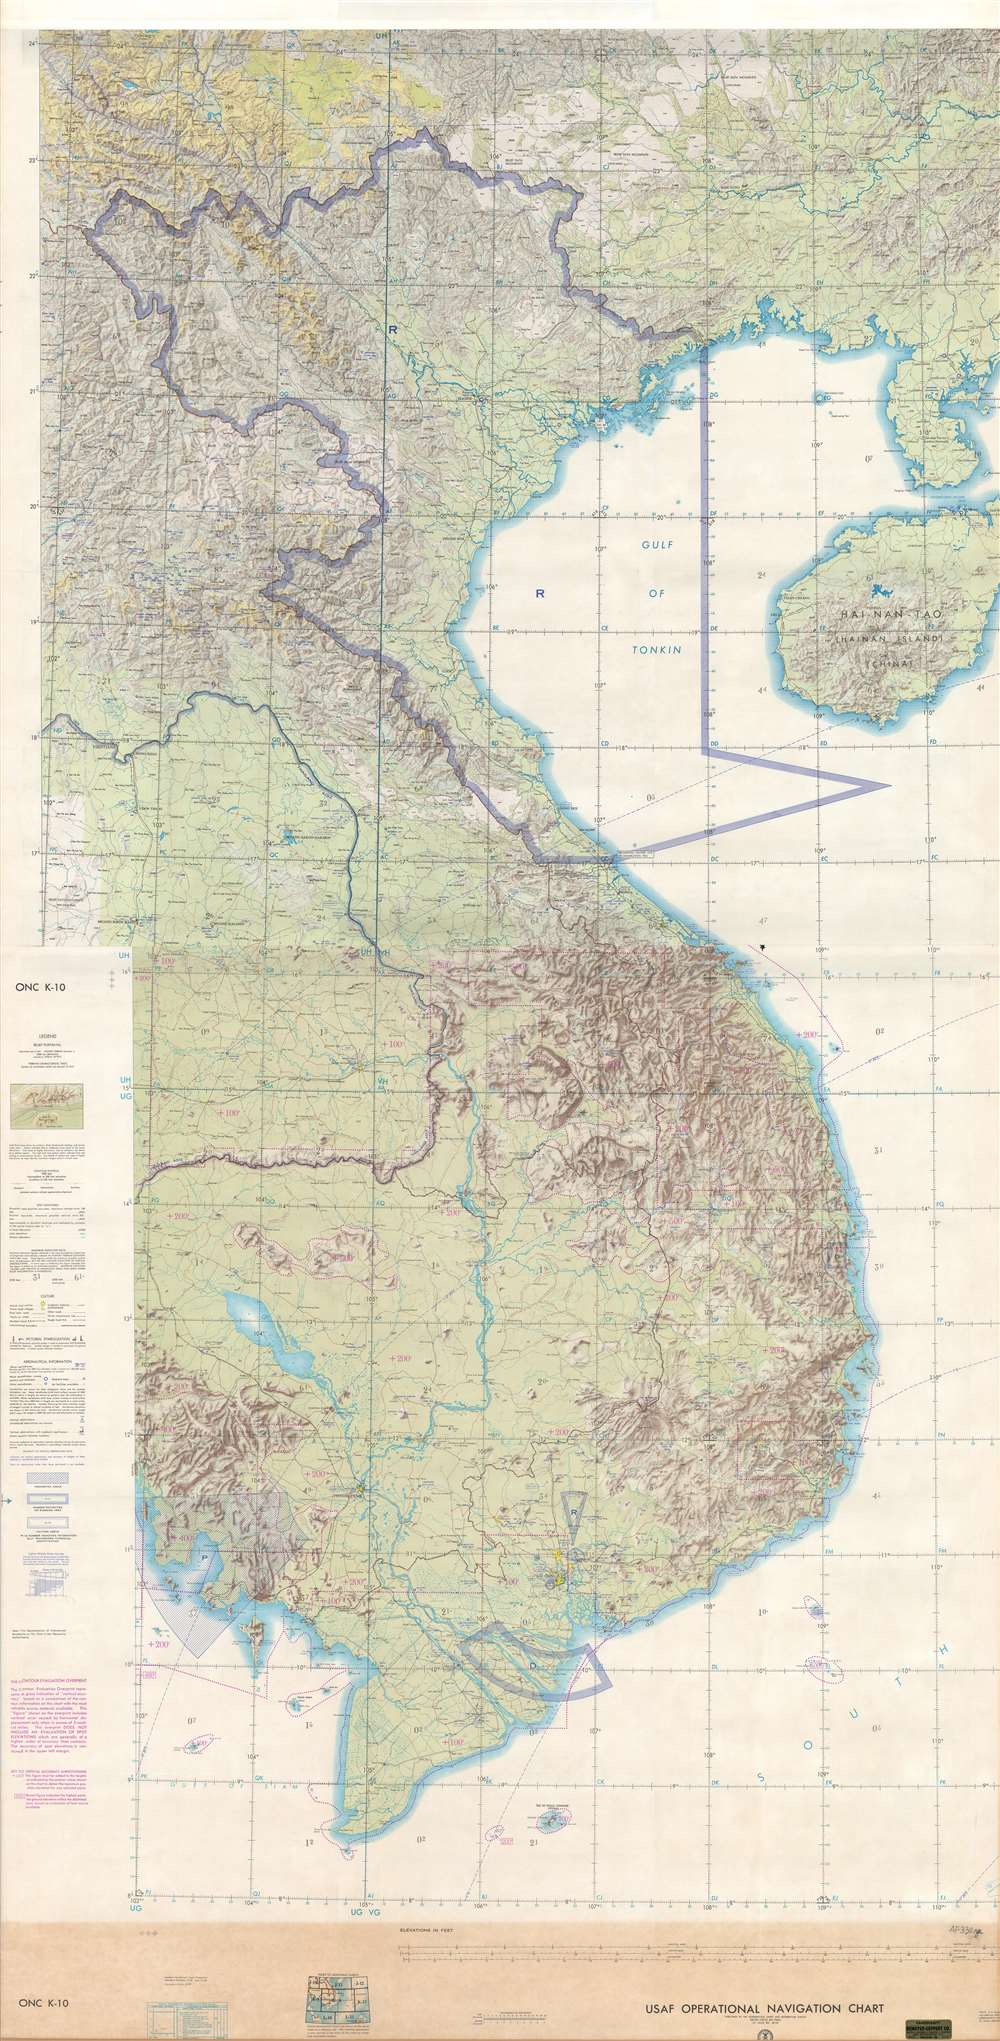 USAF Operations Navigation Chart ONC K-10 / USAF Operations Navigation Chart ONC J-11.